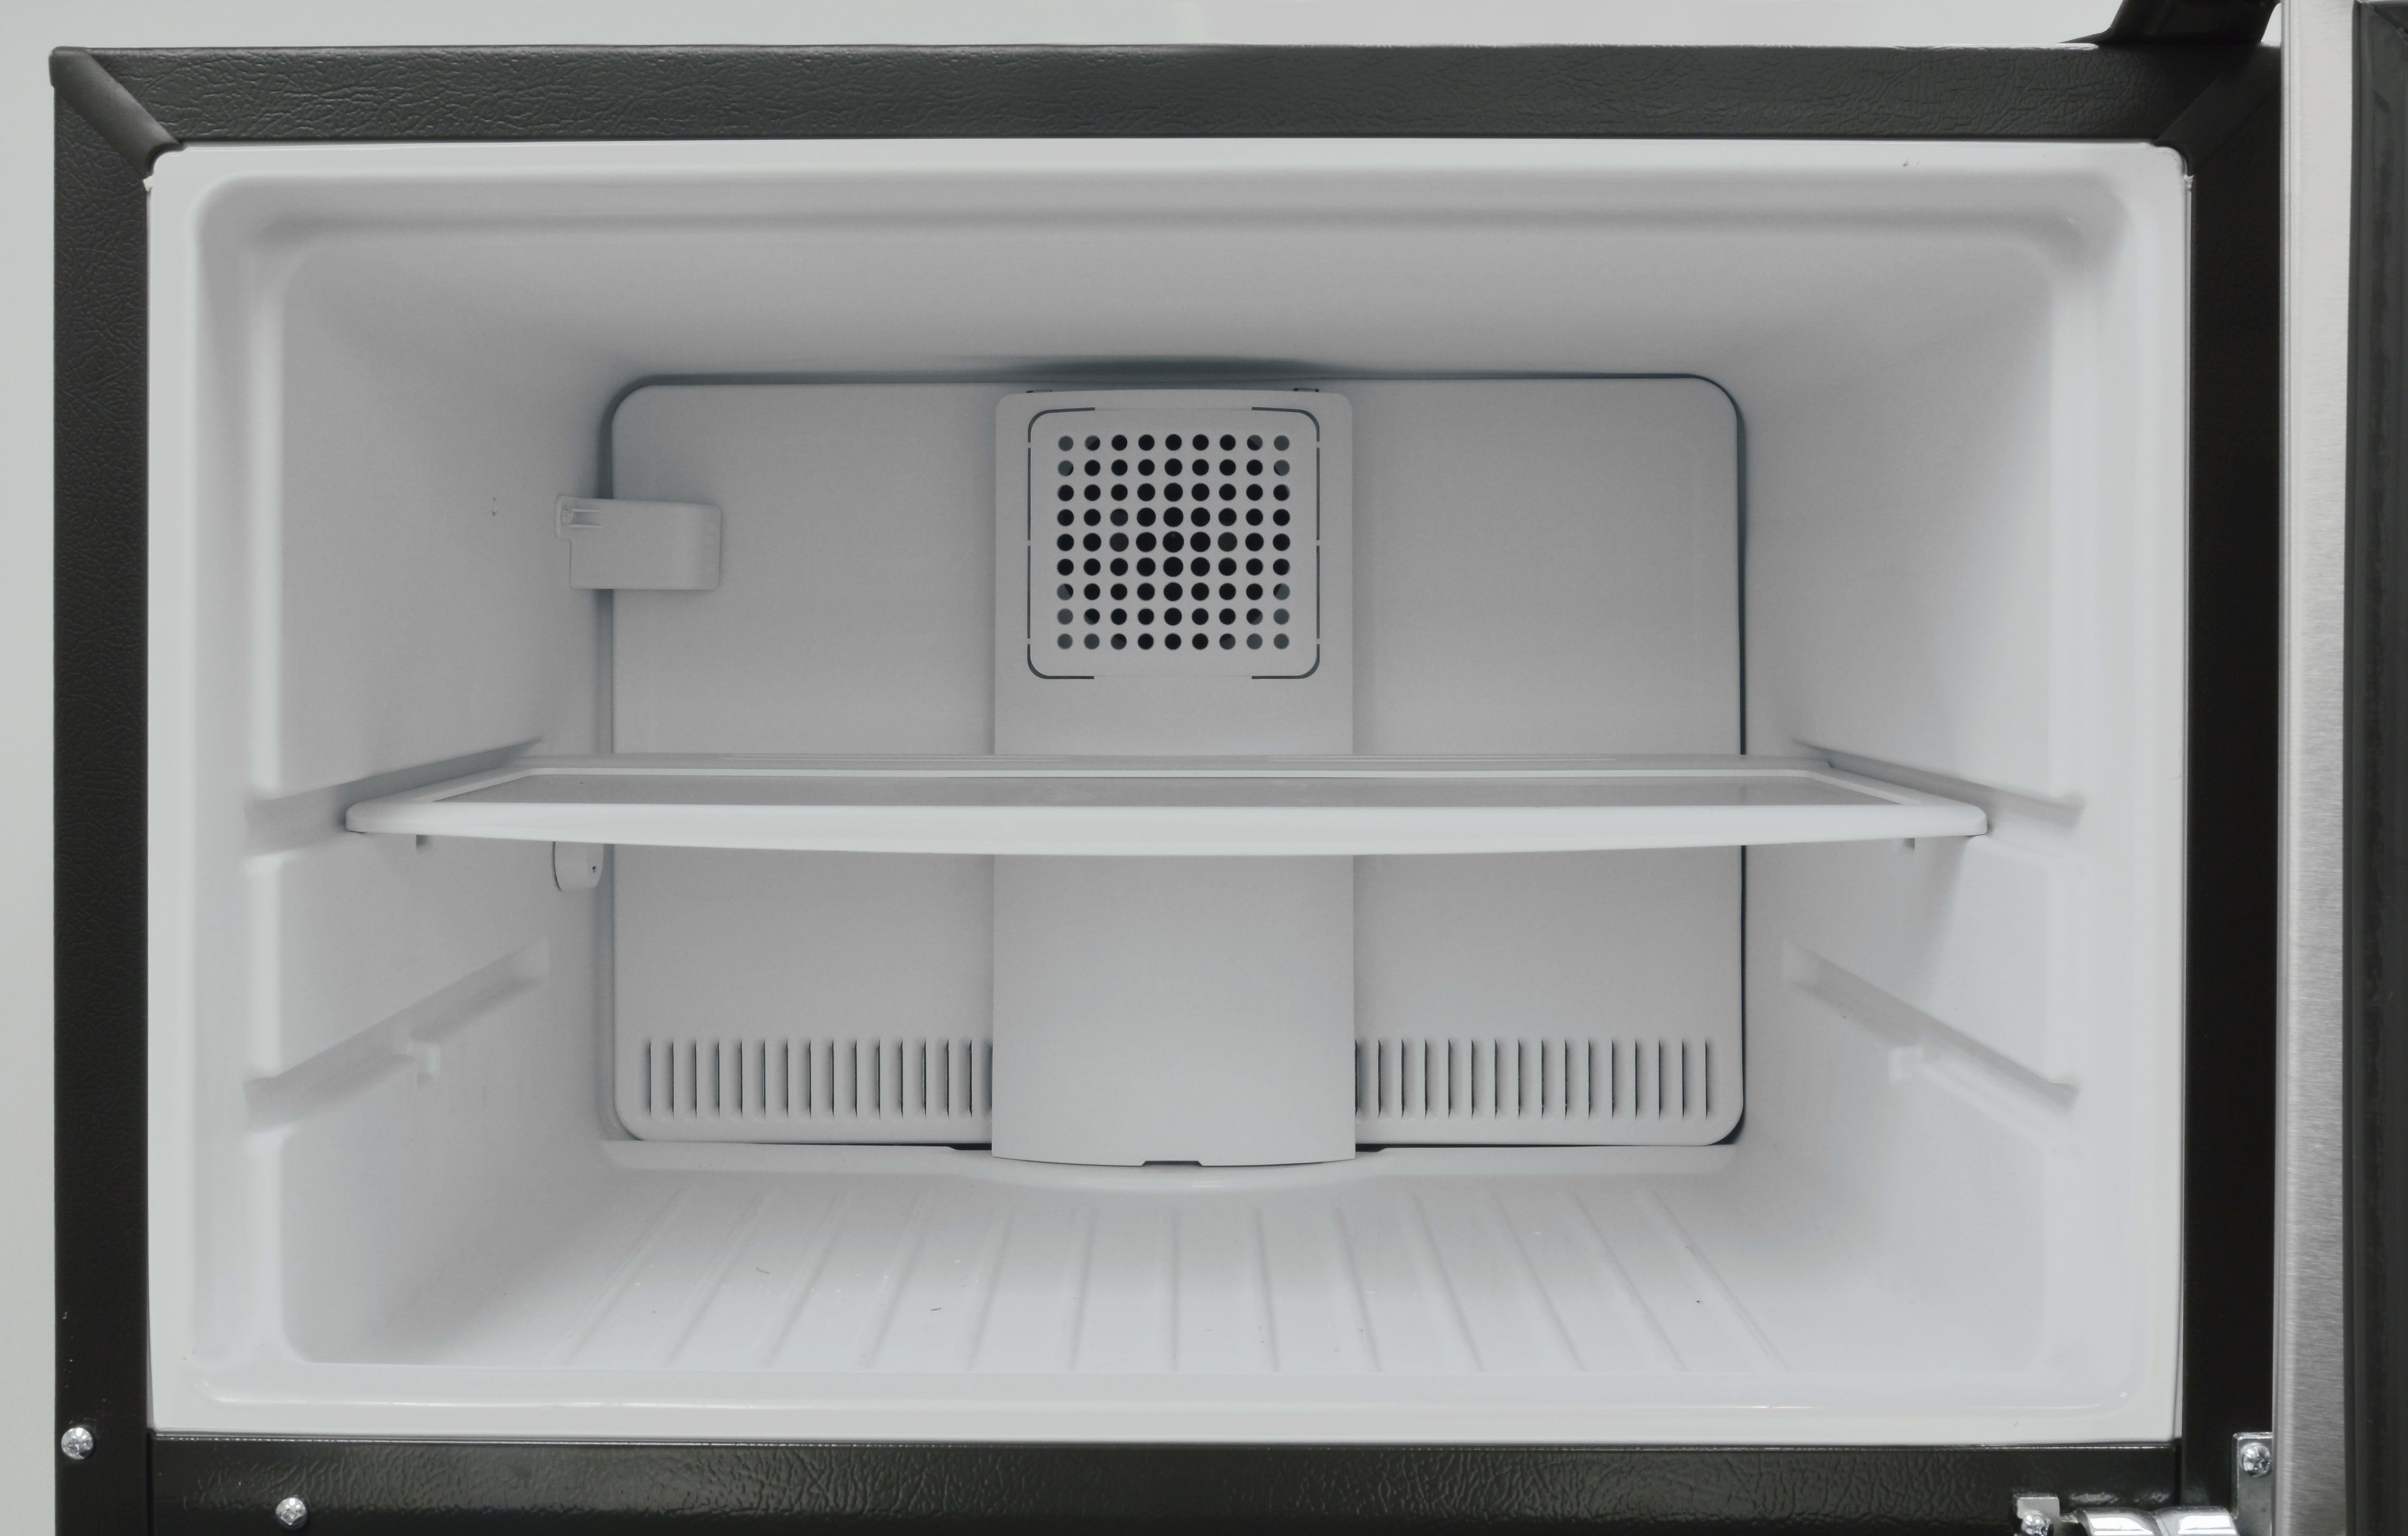 Inside the GE GAS18P's freezer, you get one adjustable shelf. No light, no ice maker; it's very basic.